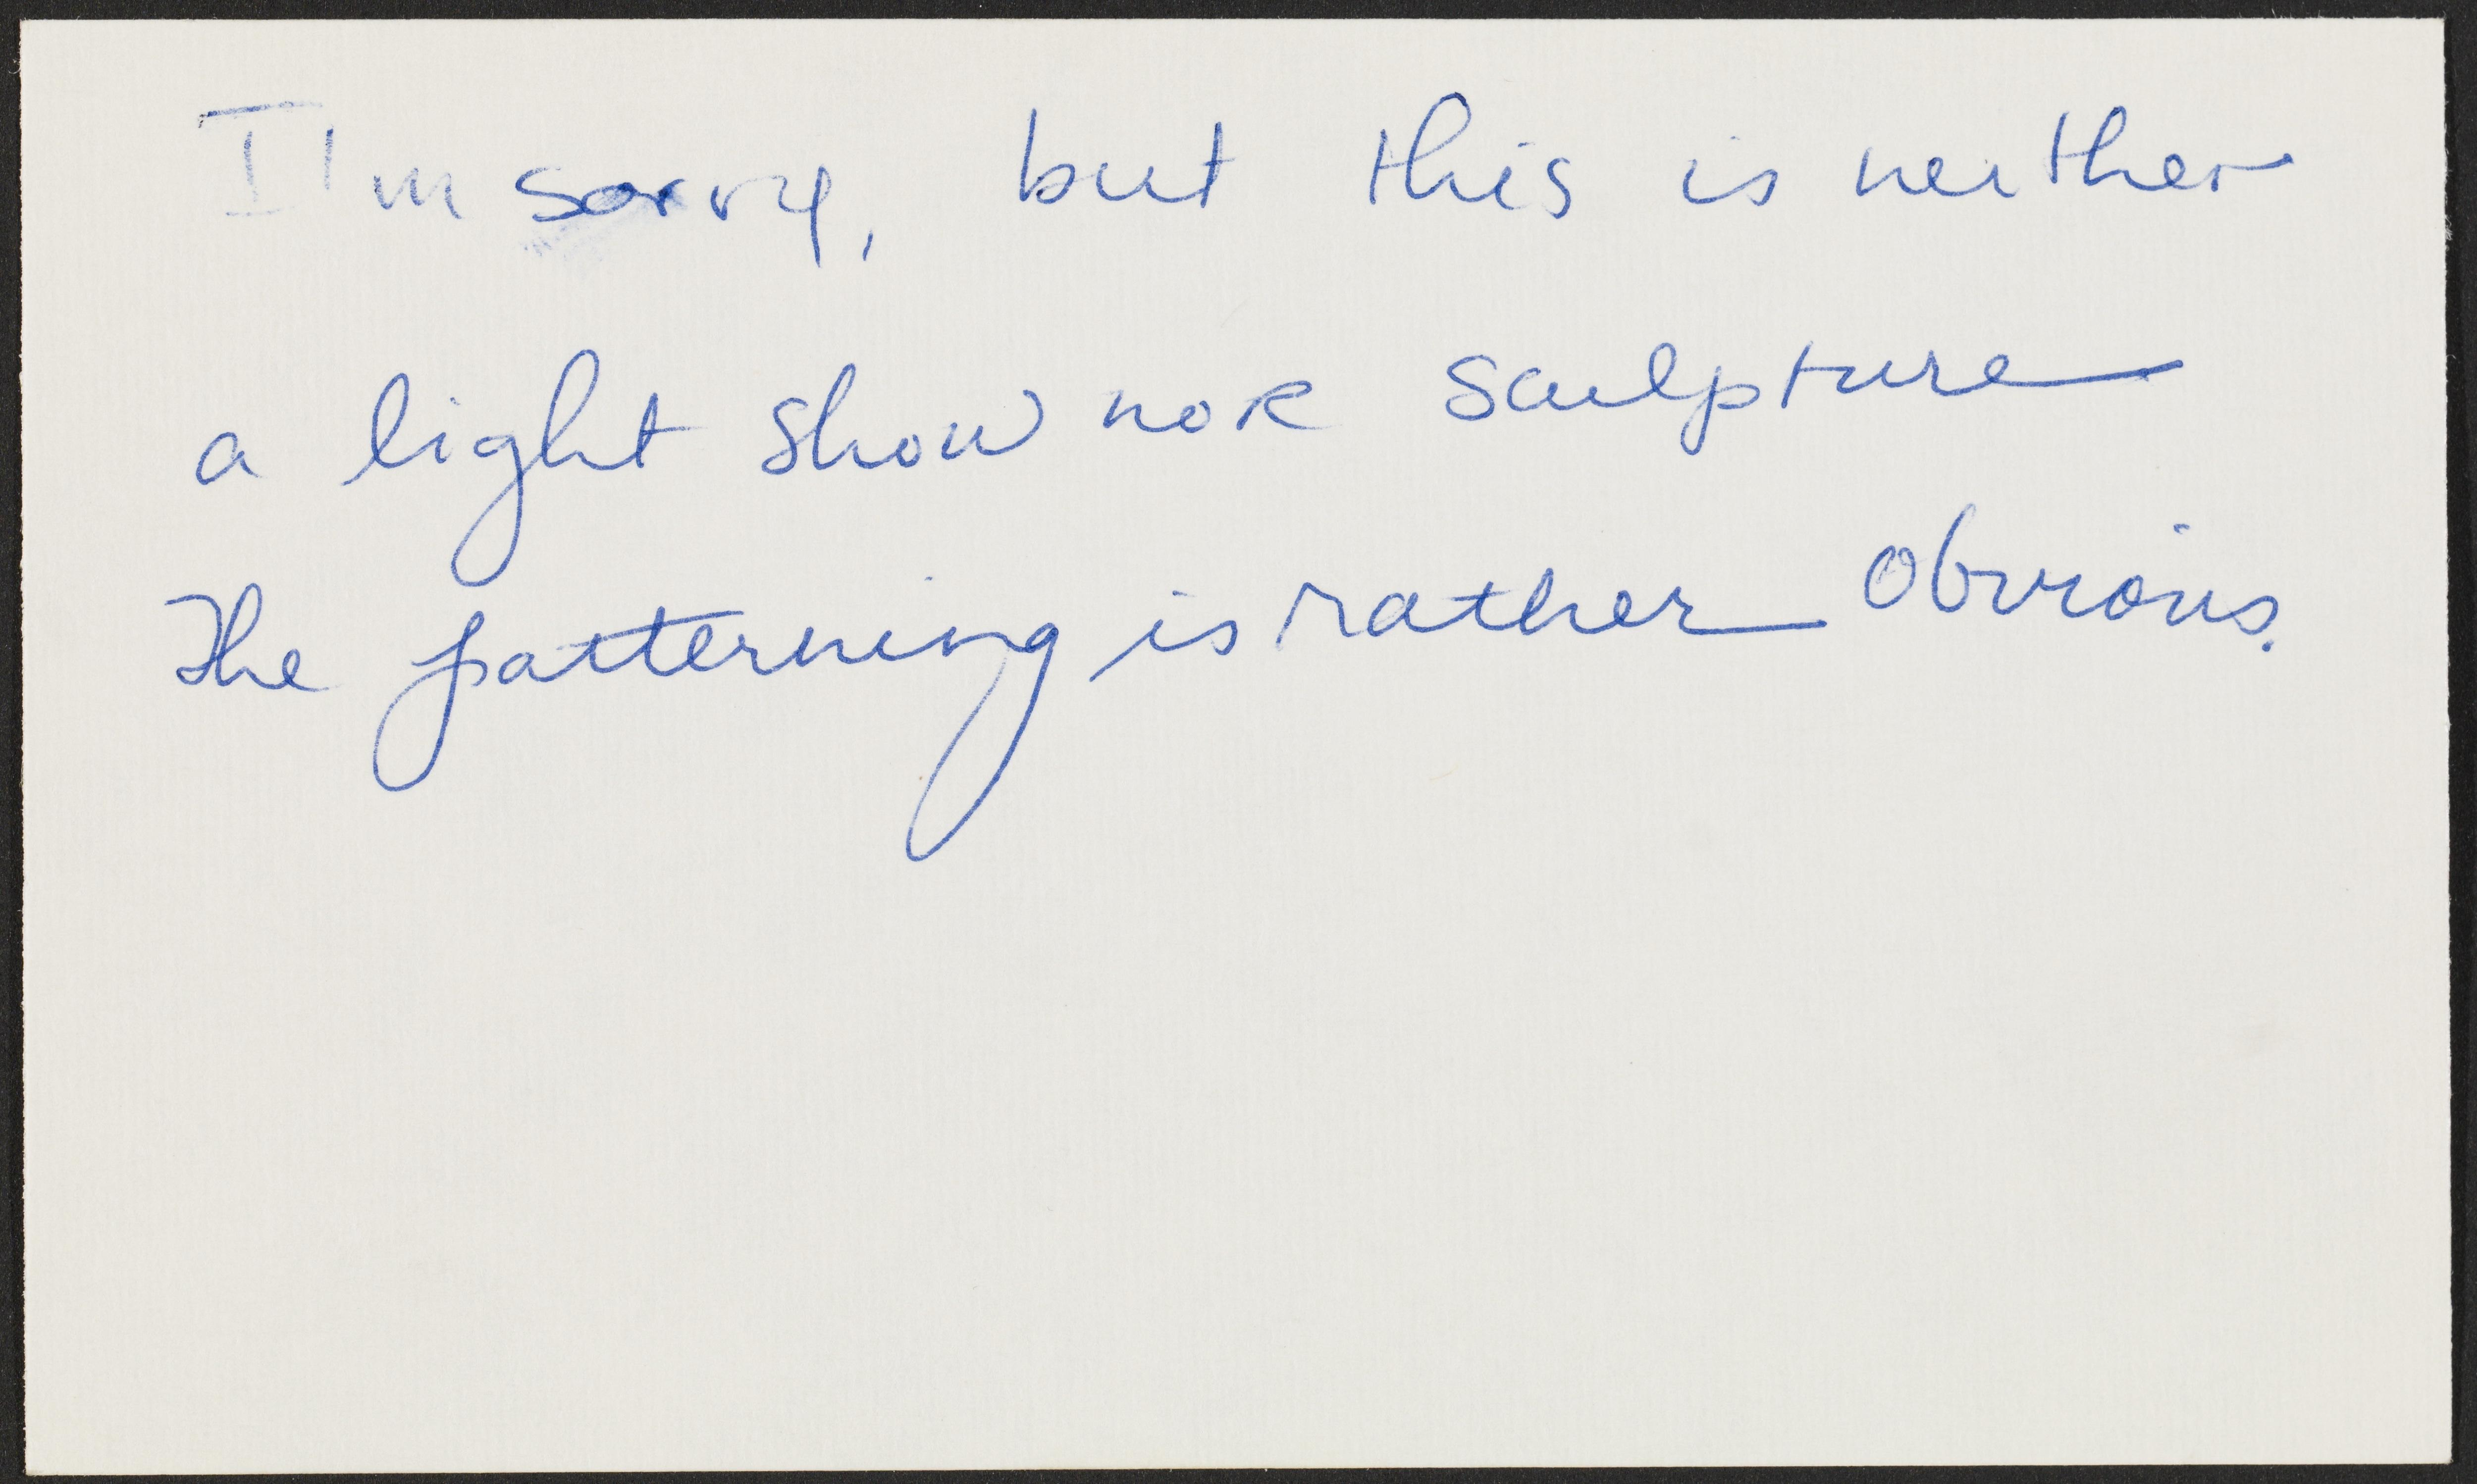 """An index card with handwritten text reads """"I'm sorry, but this is neither a light show nor sculpture the patterning is rather obvious."""""""